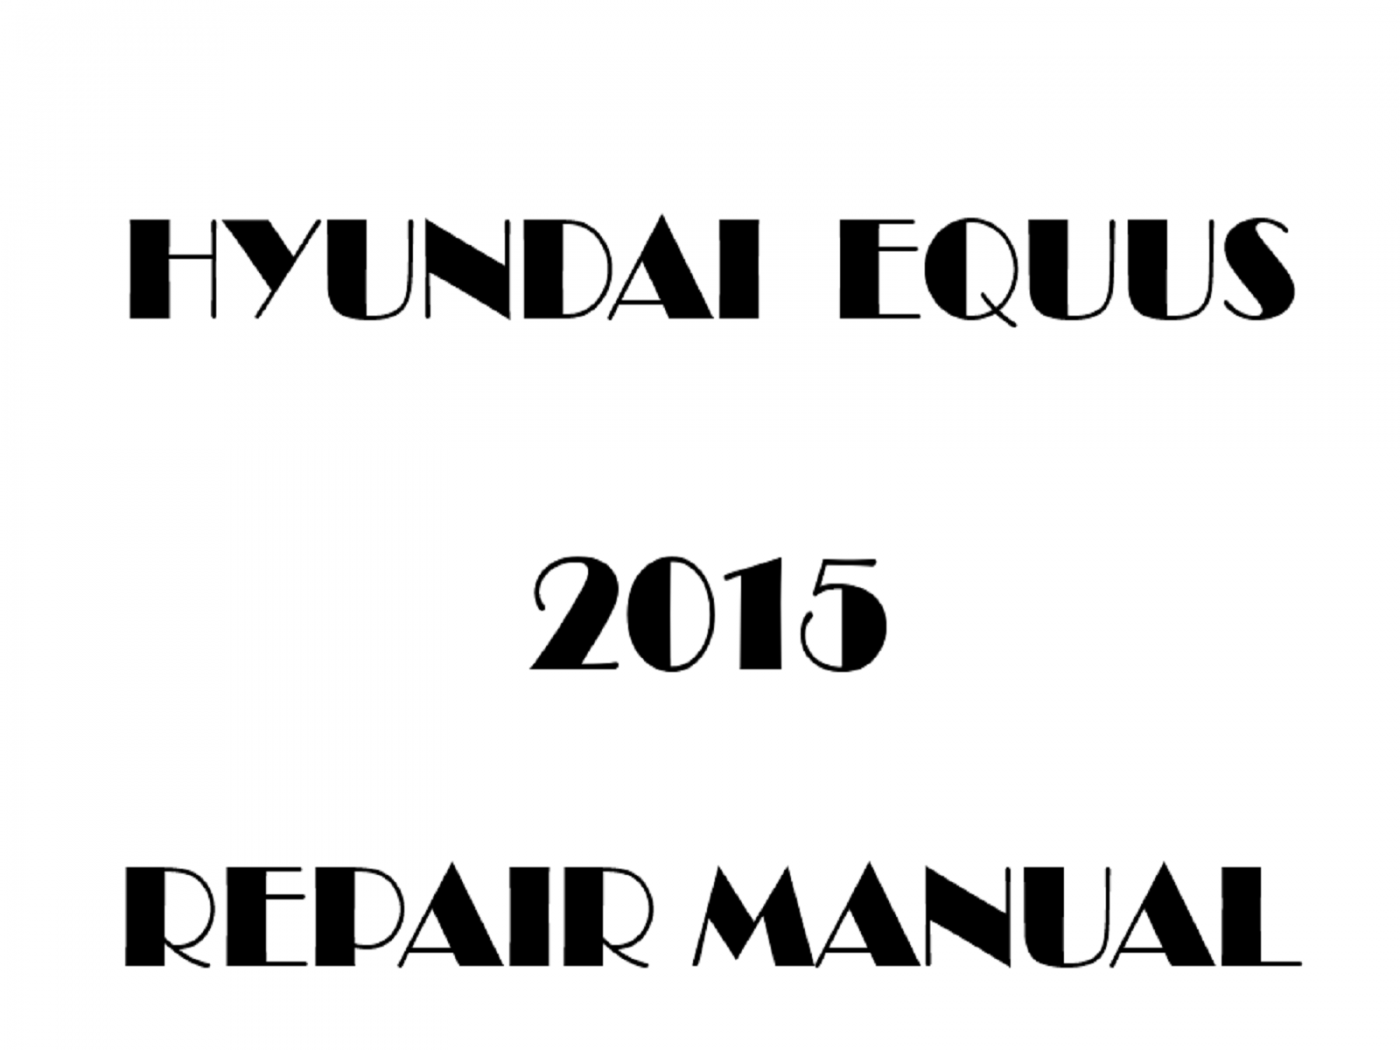 2015 Hyundai Equus repair manual